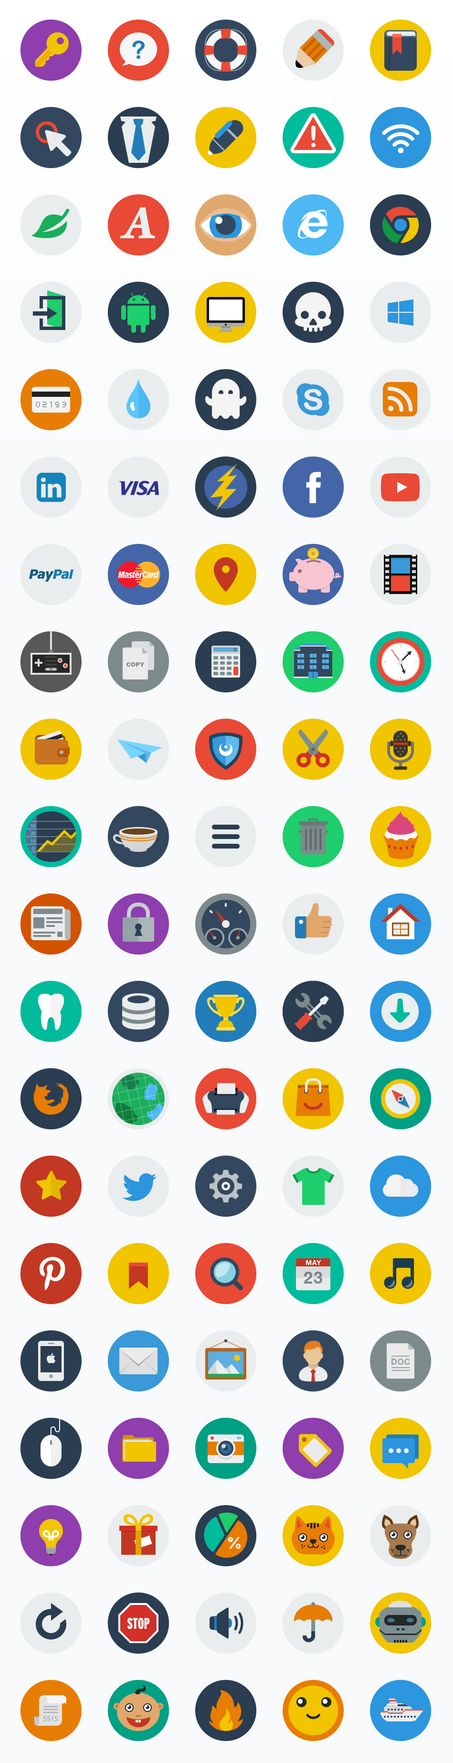 CreAtive - Flat Icons by sandracz